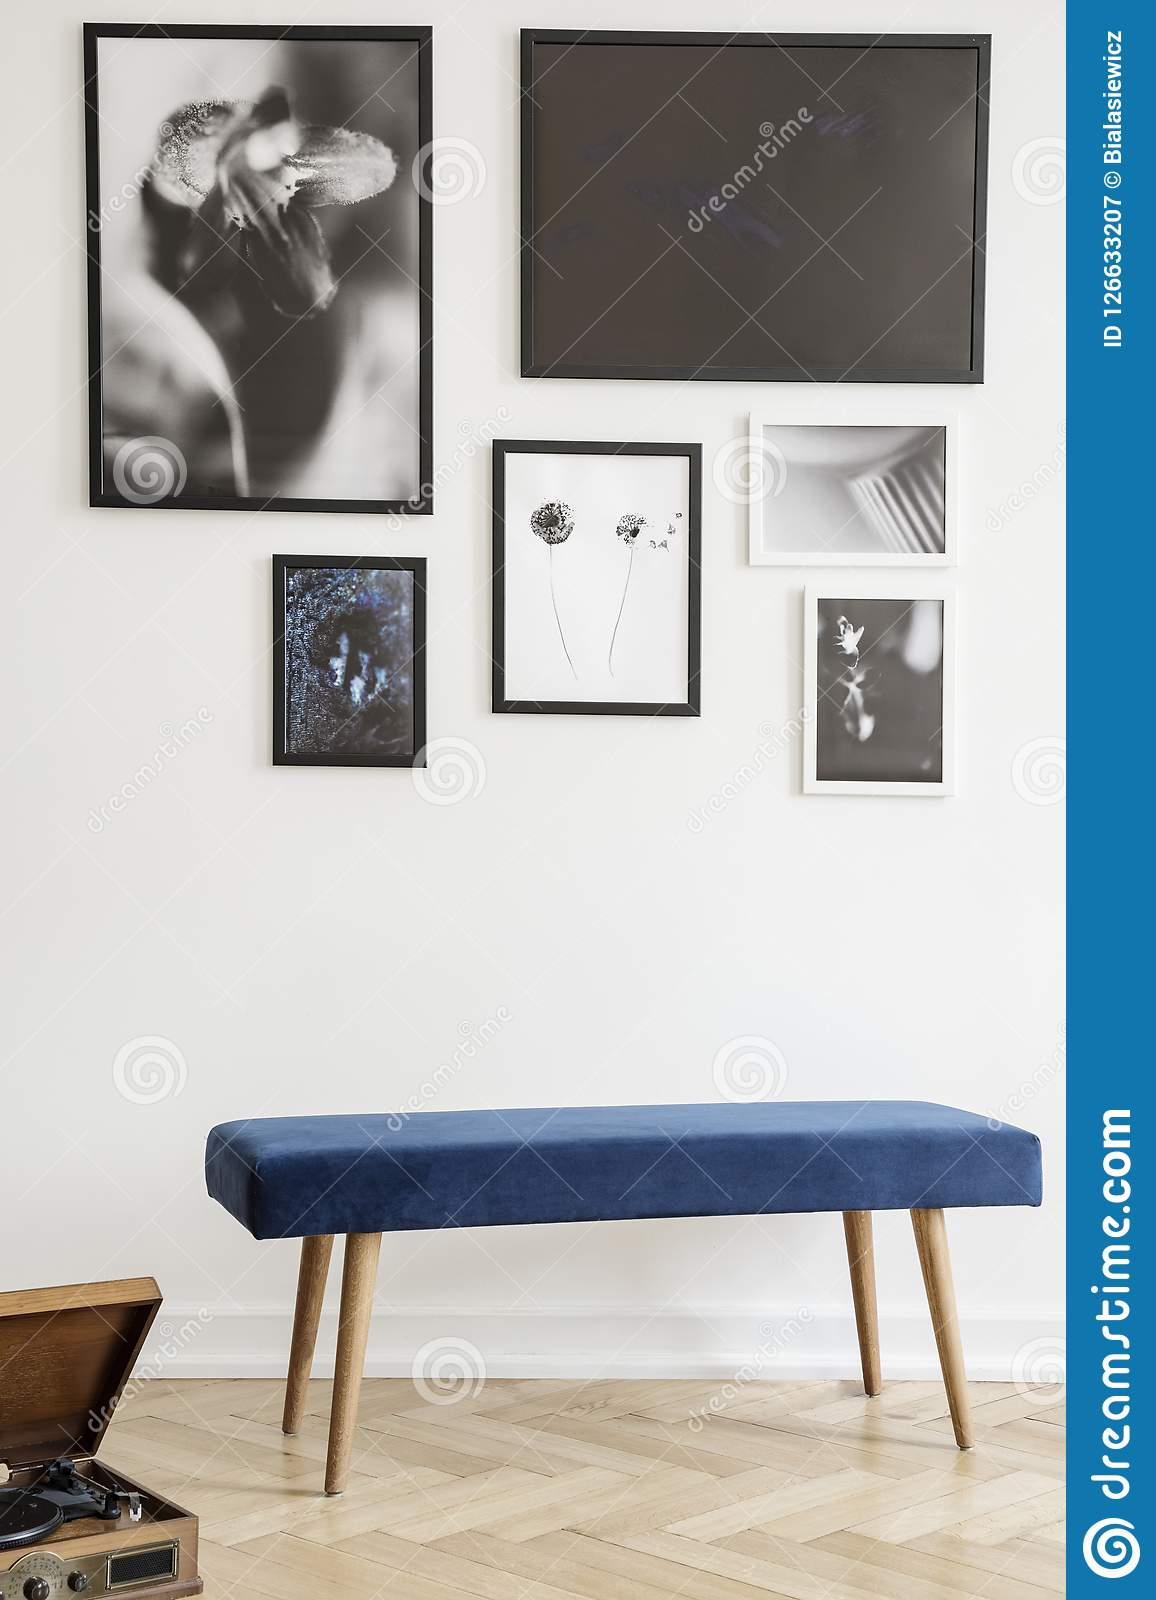 navy blue bench against white wall gallery posters living room interior real photo navy blue bench against white wall